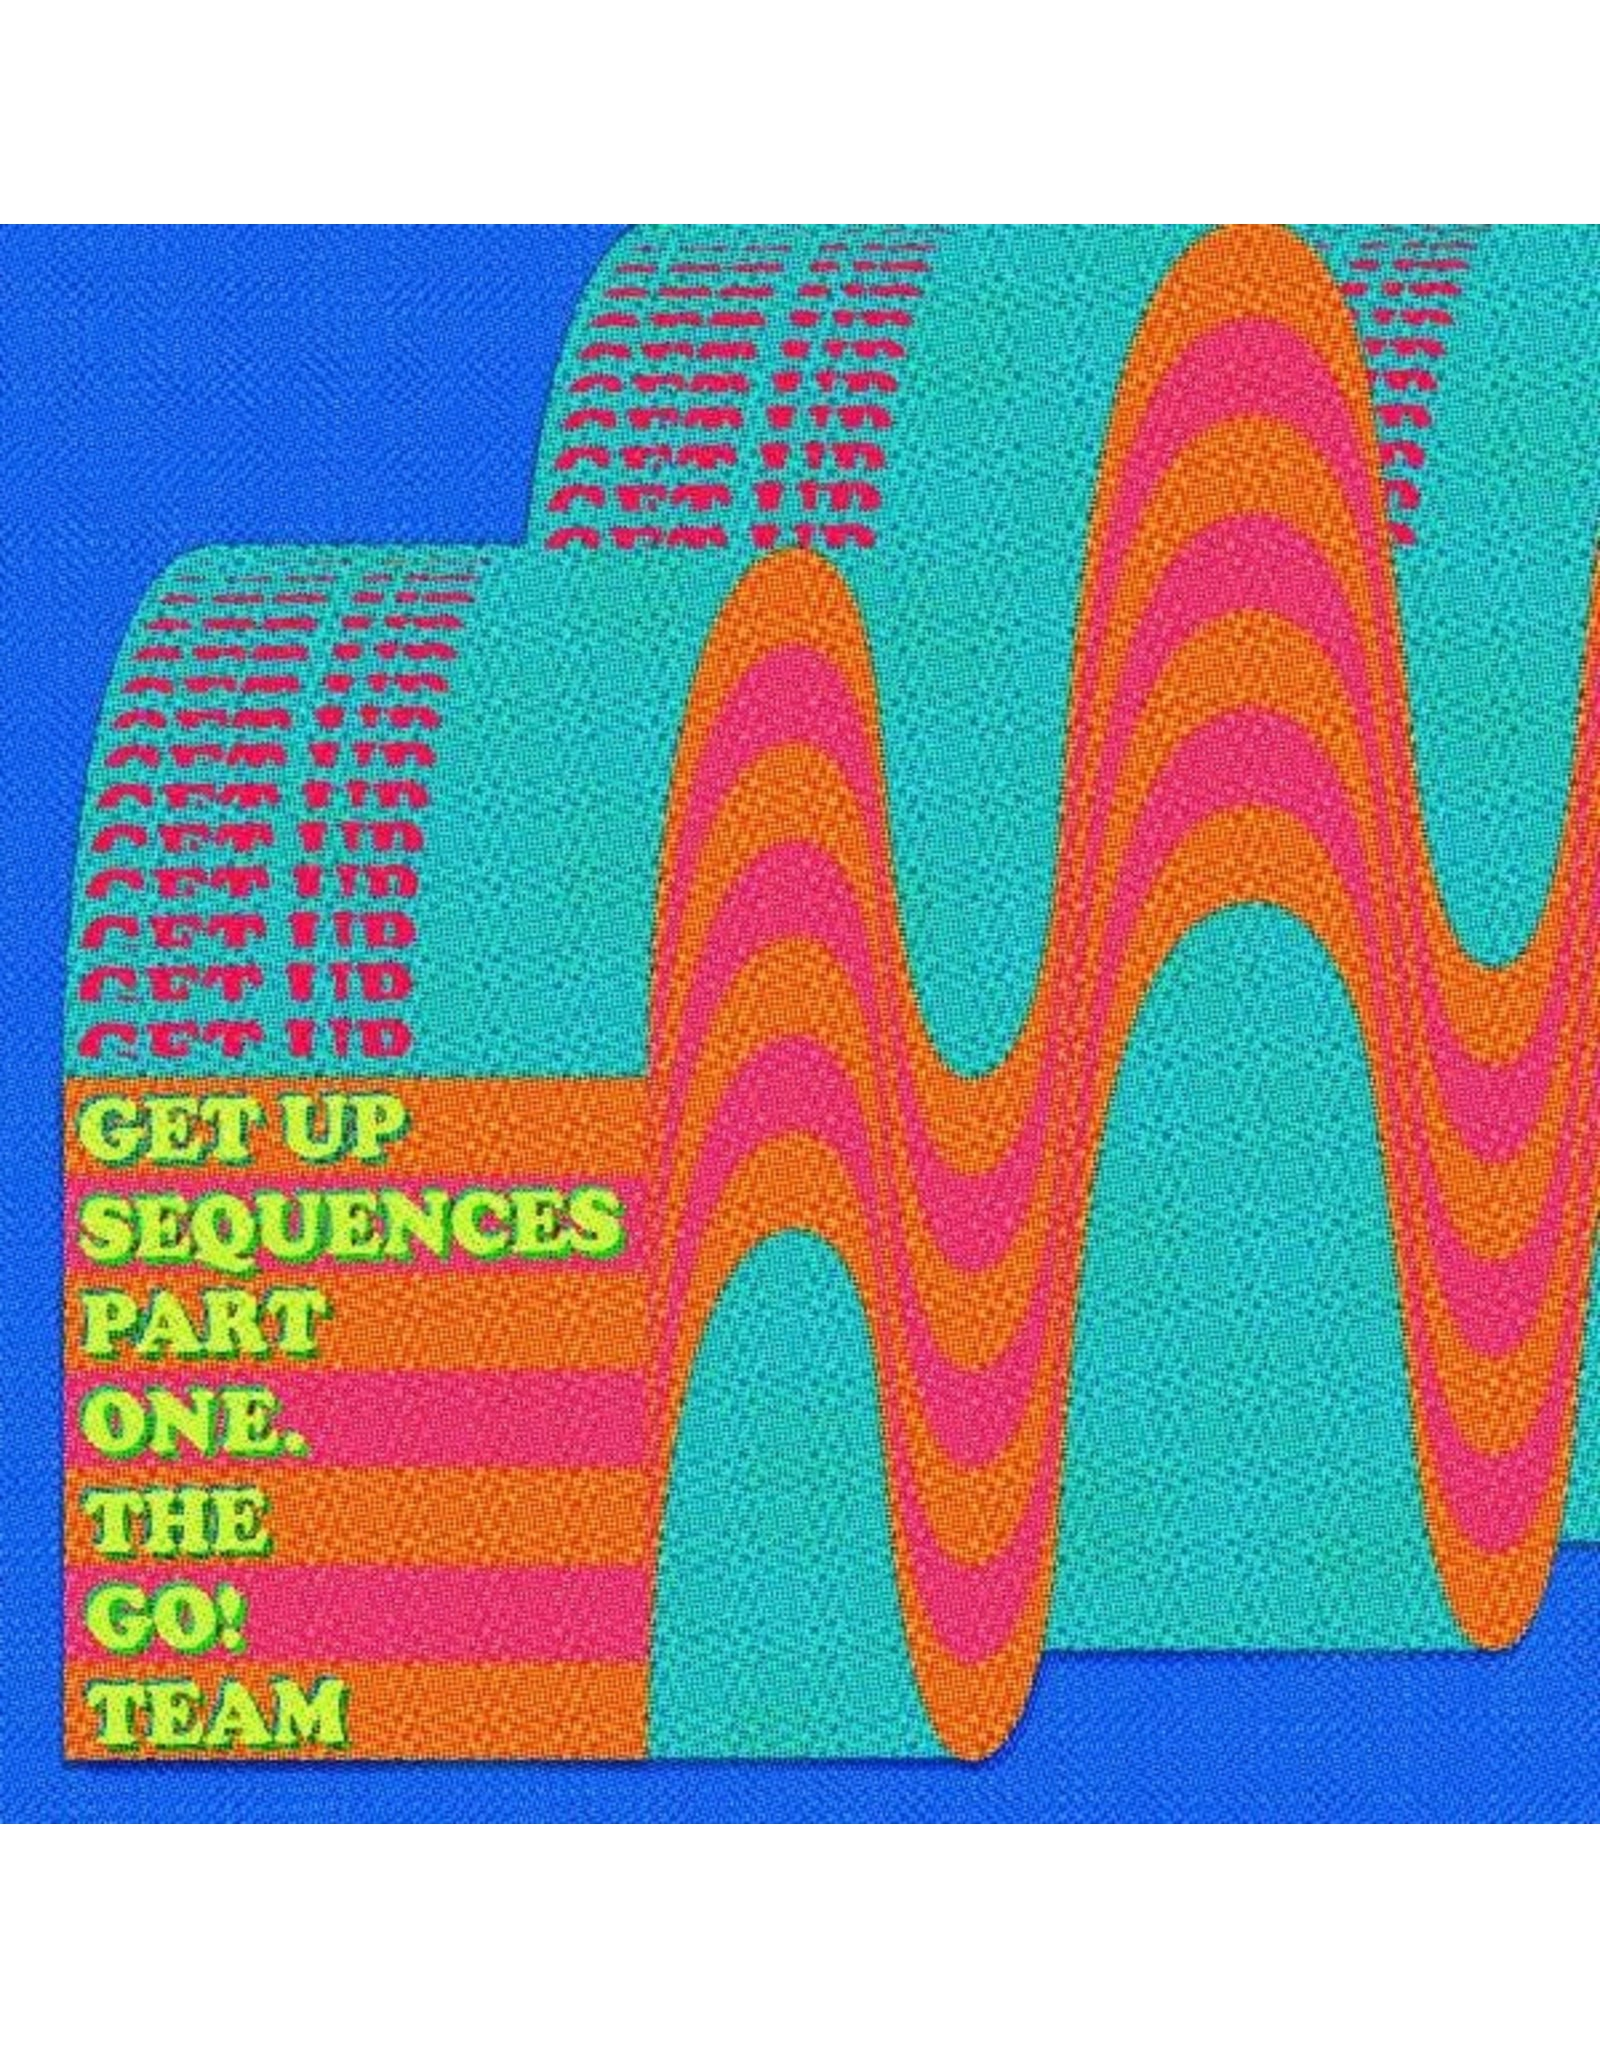 New Vinyl The Go! Team - Get Up Sequences Part One LP